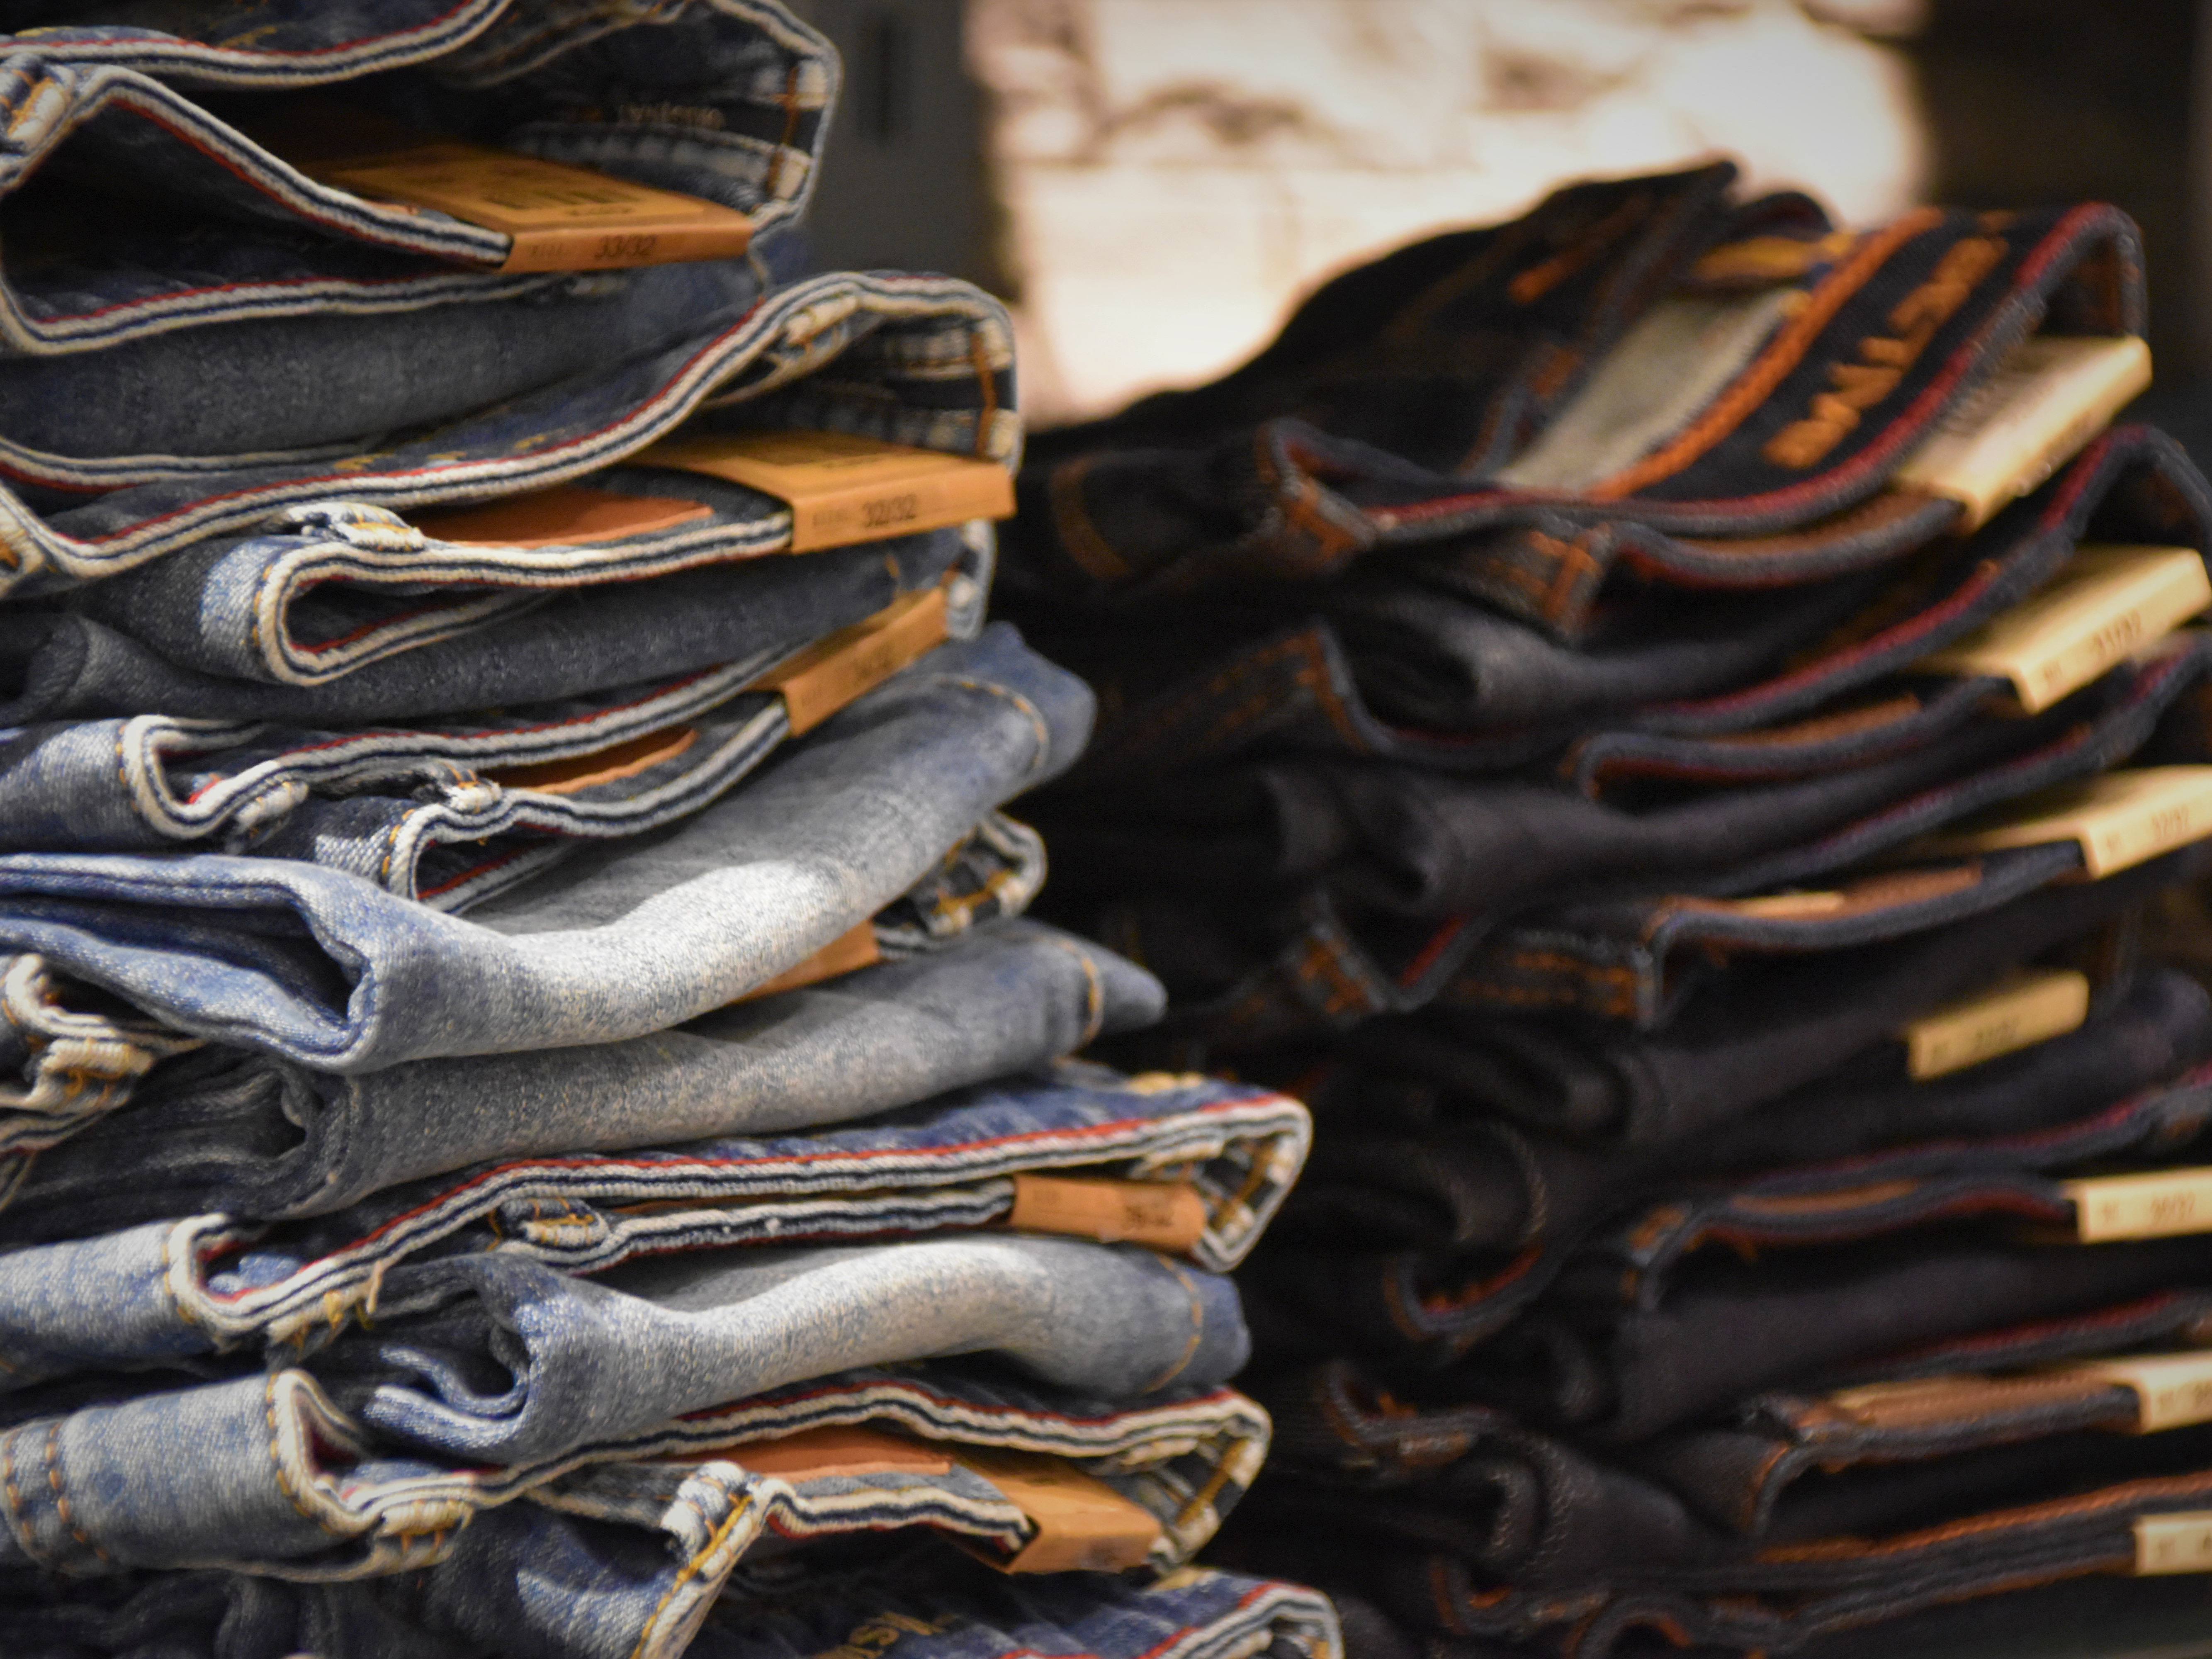 Global Fashion Brands Face EU Crackdown to Clean Up Textiles